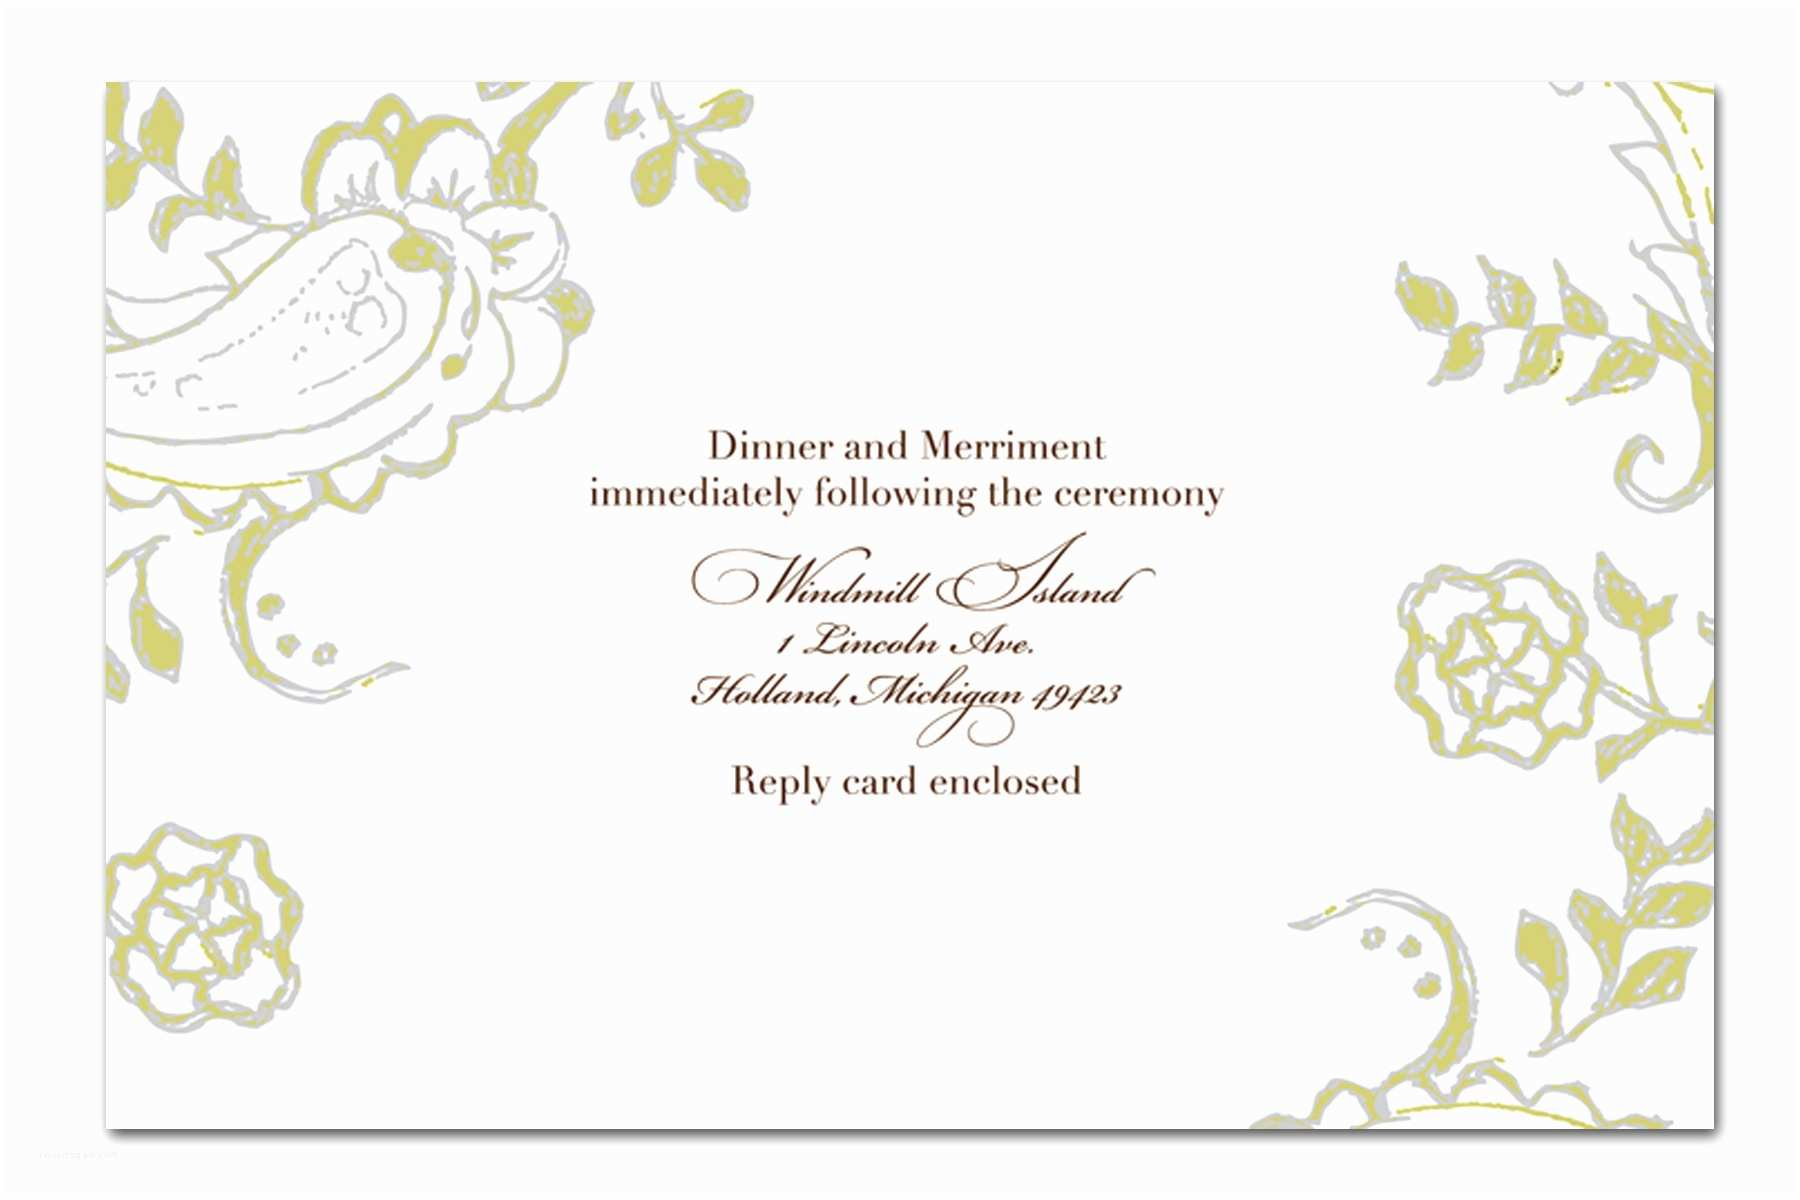 Postcard Wedding Invitations Template Collection Of Thousands Of Invitation Templates From All